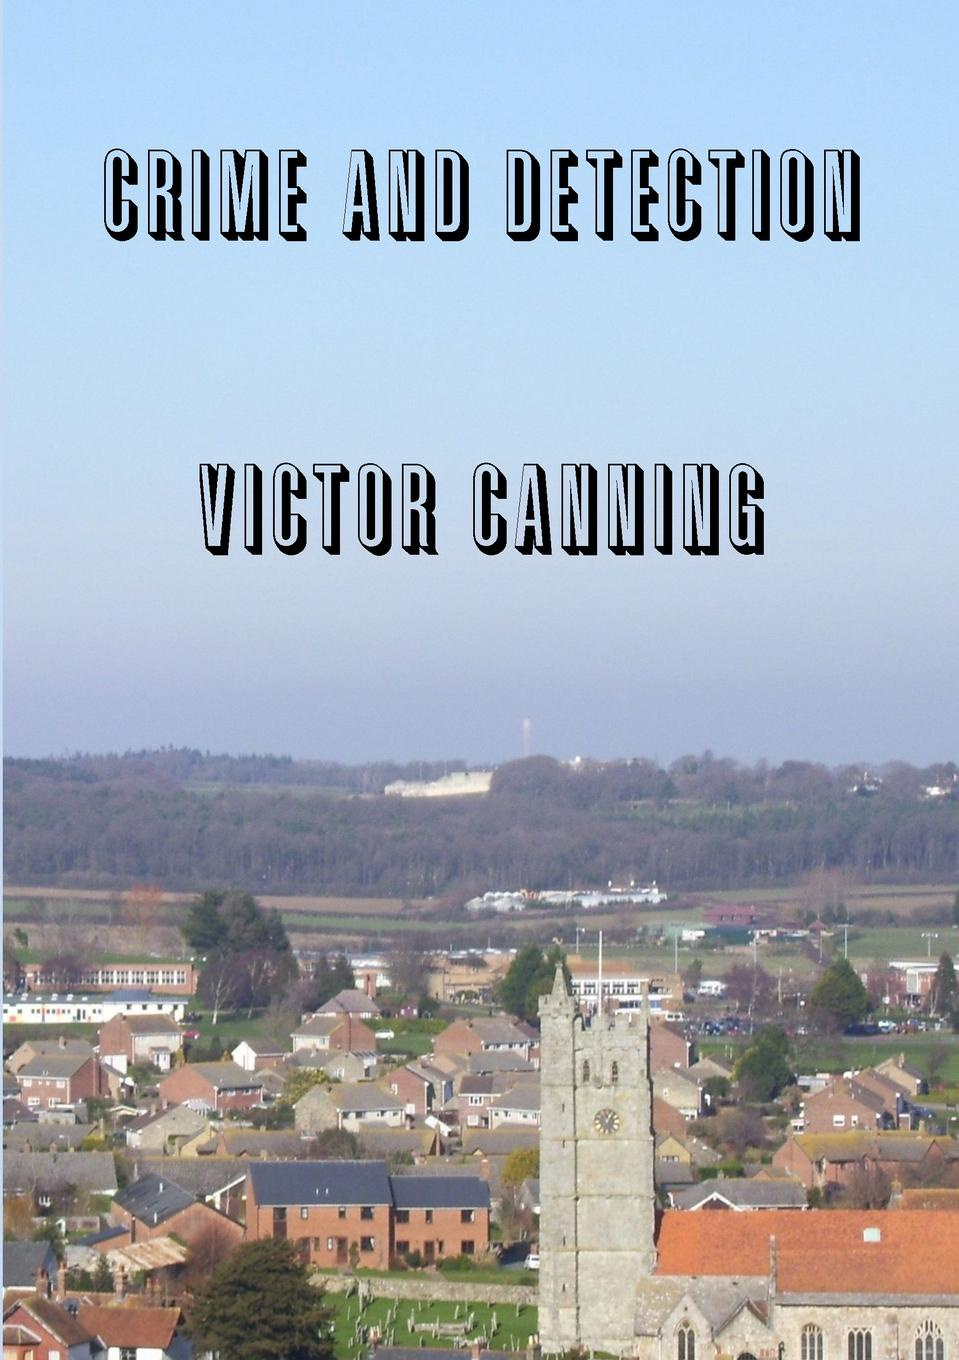 Victor Canning Crime . Detection crime and punisment